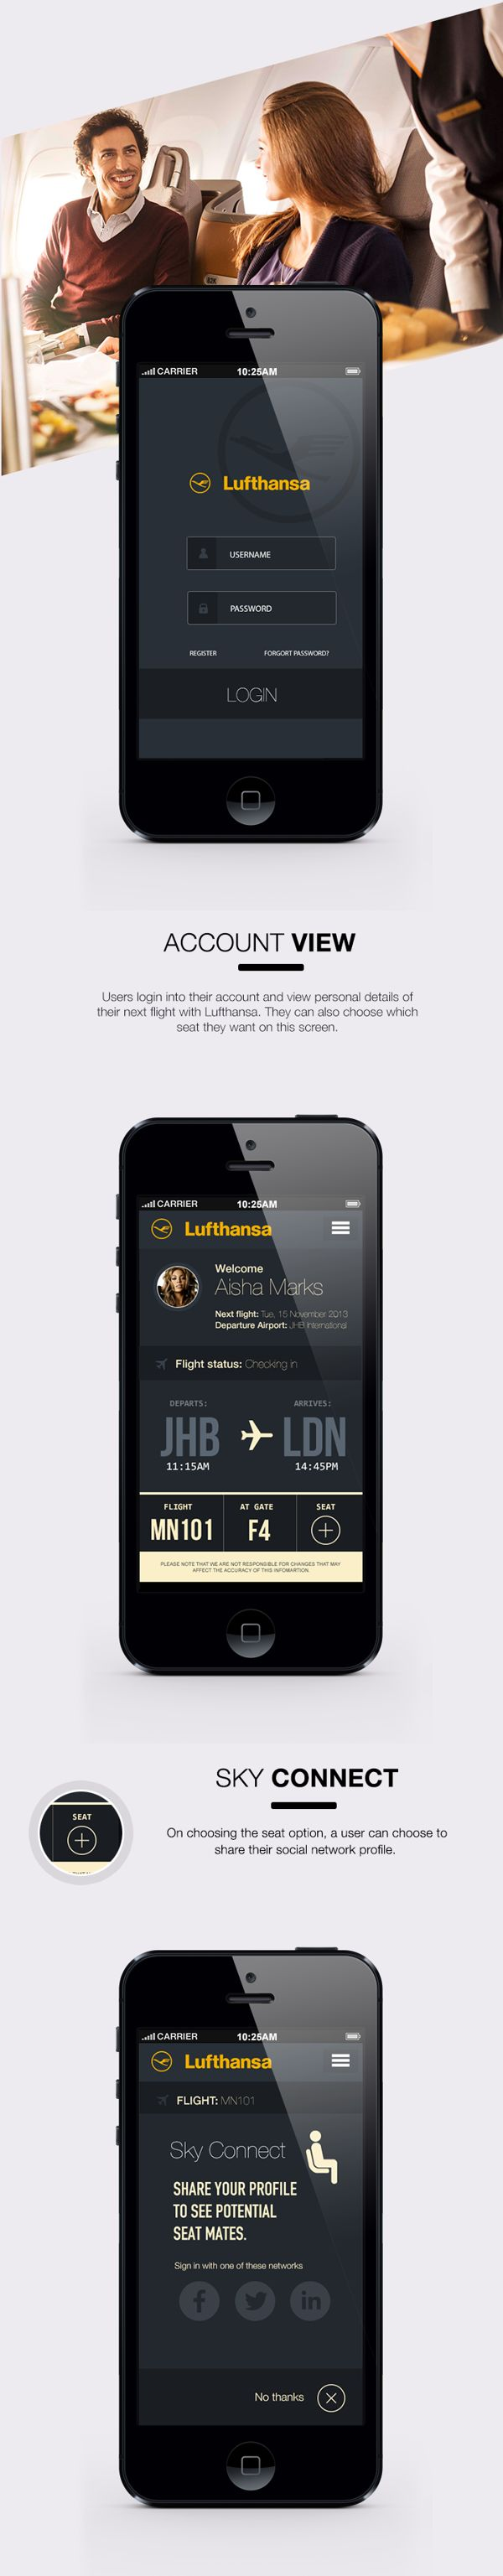 17 best images about flight what inspires me most lufthansa sky connect ios7 app on app design served